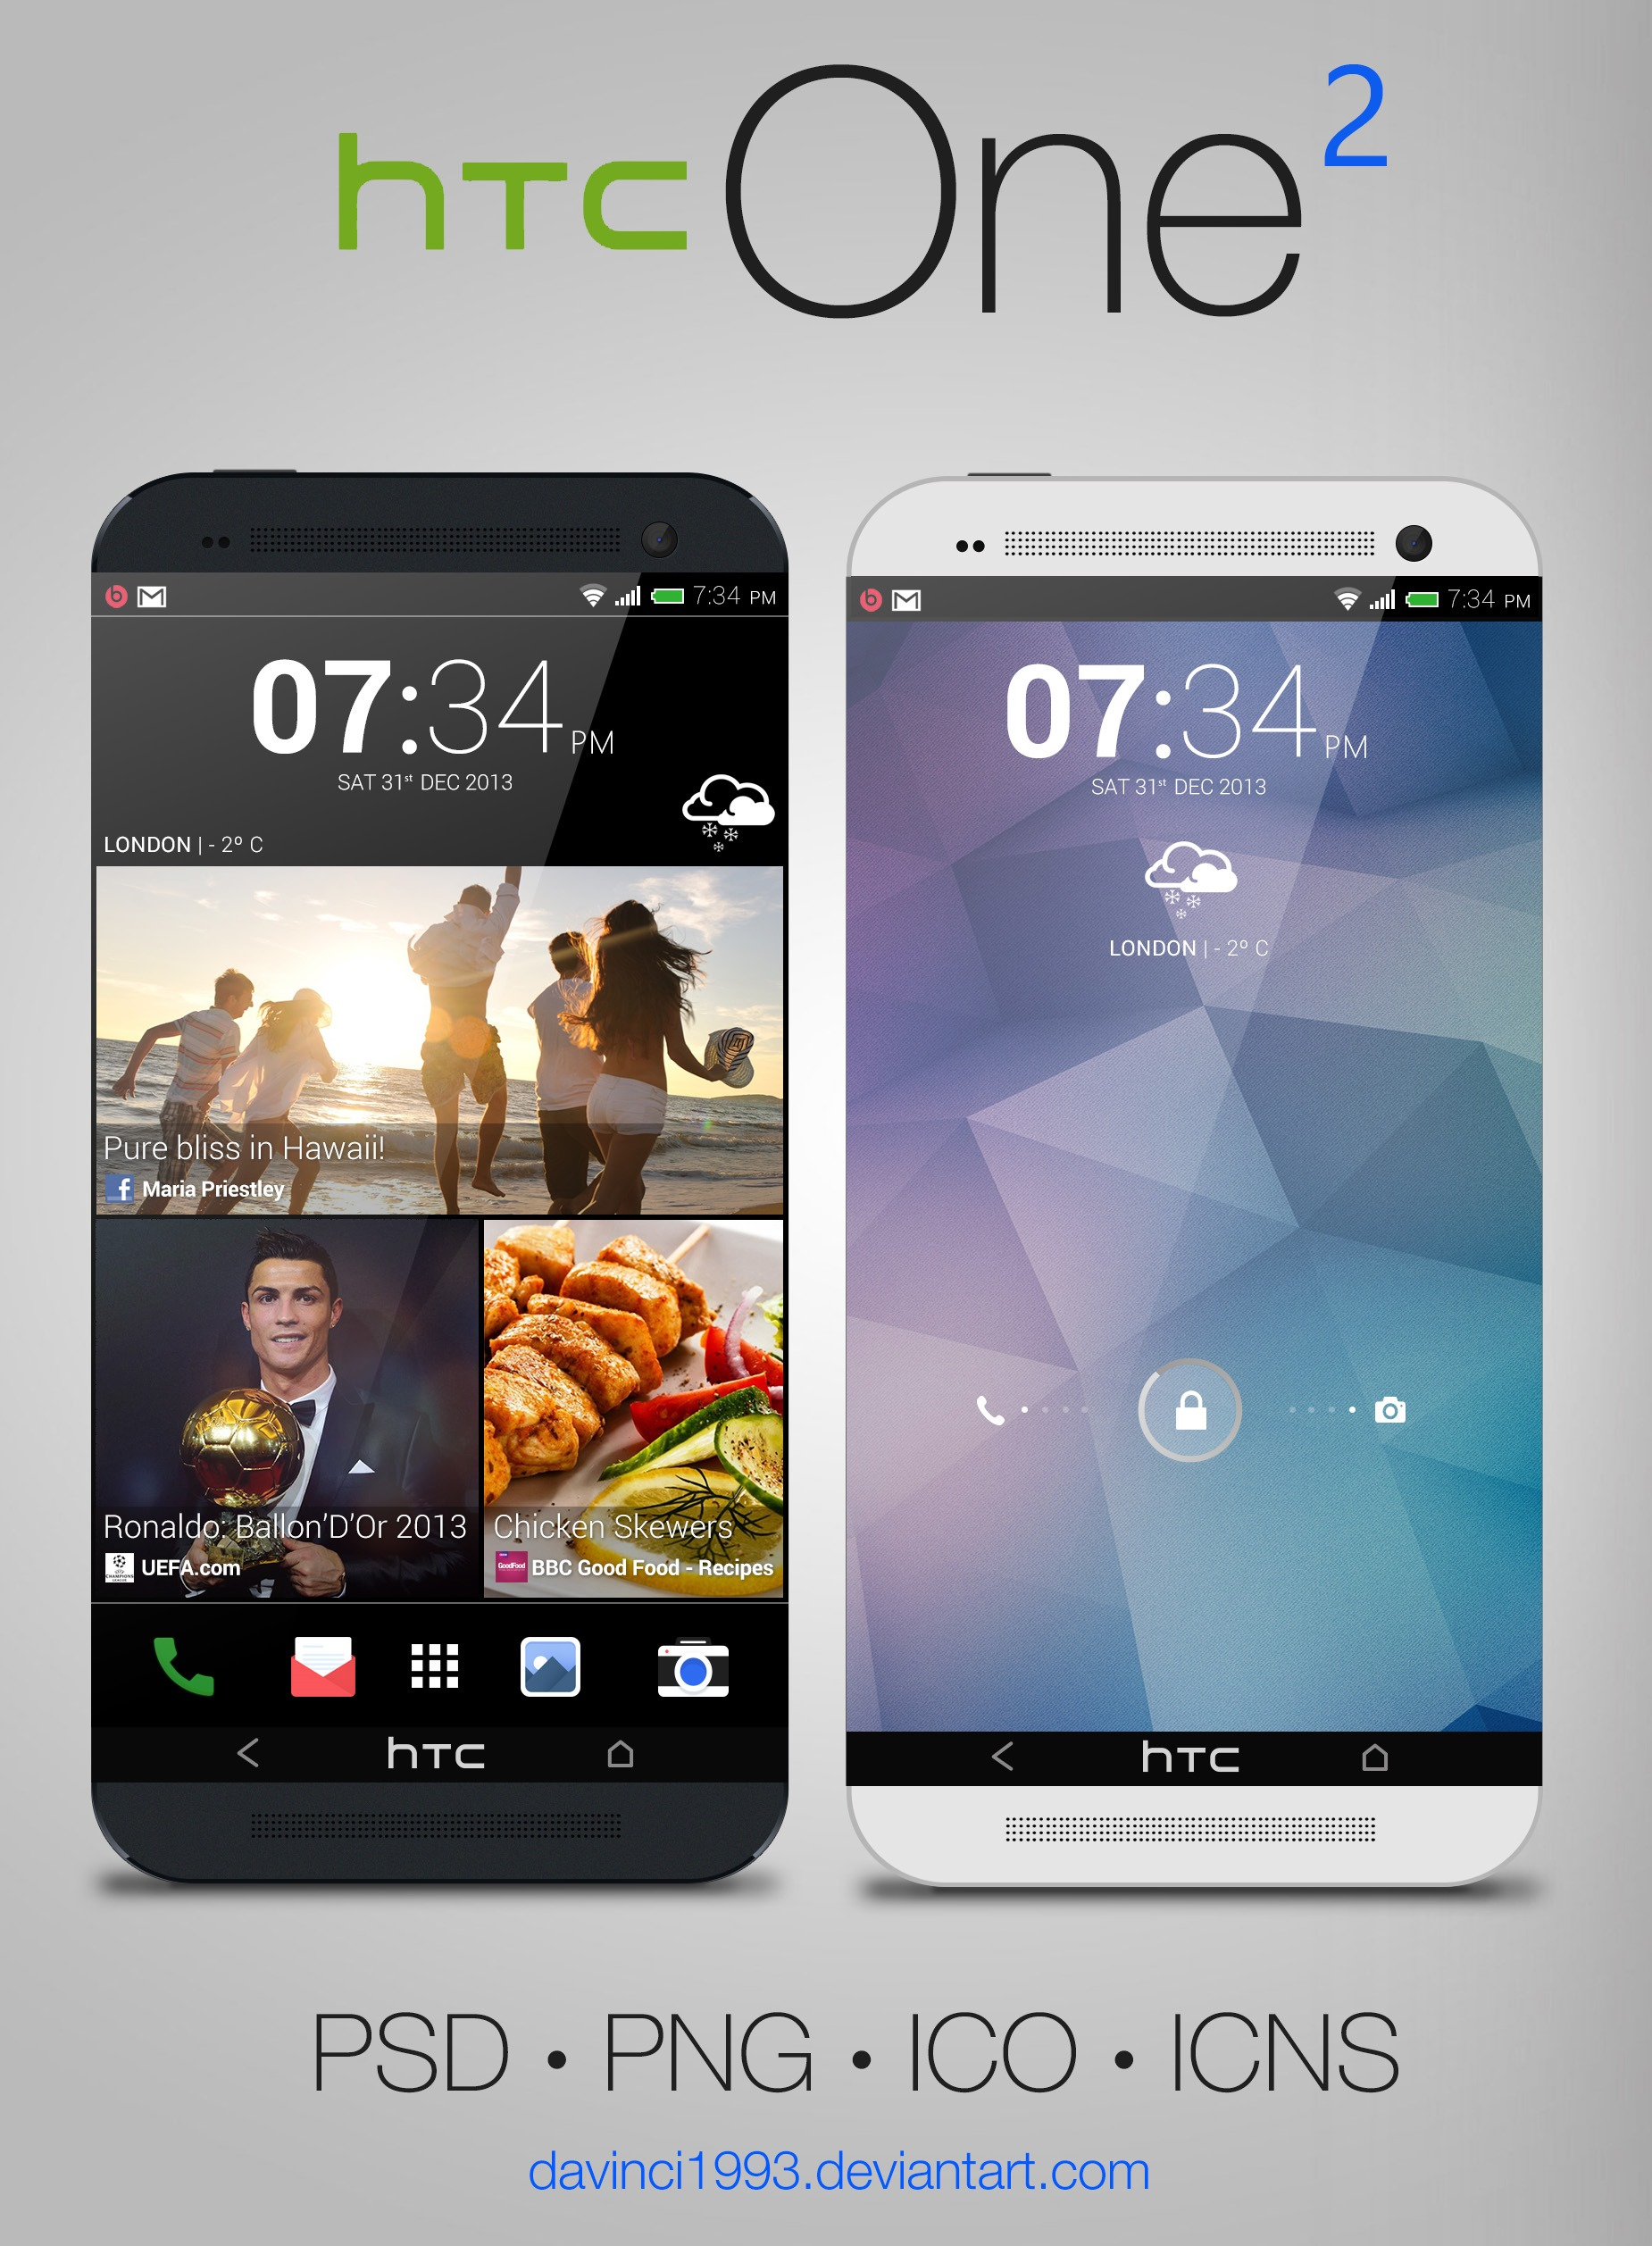 HTC One 2 (Sense 6) by davinci1993